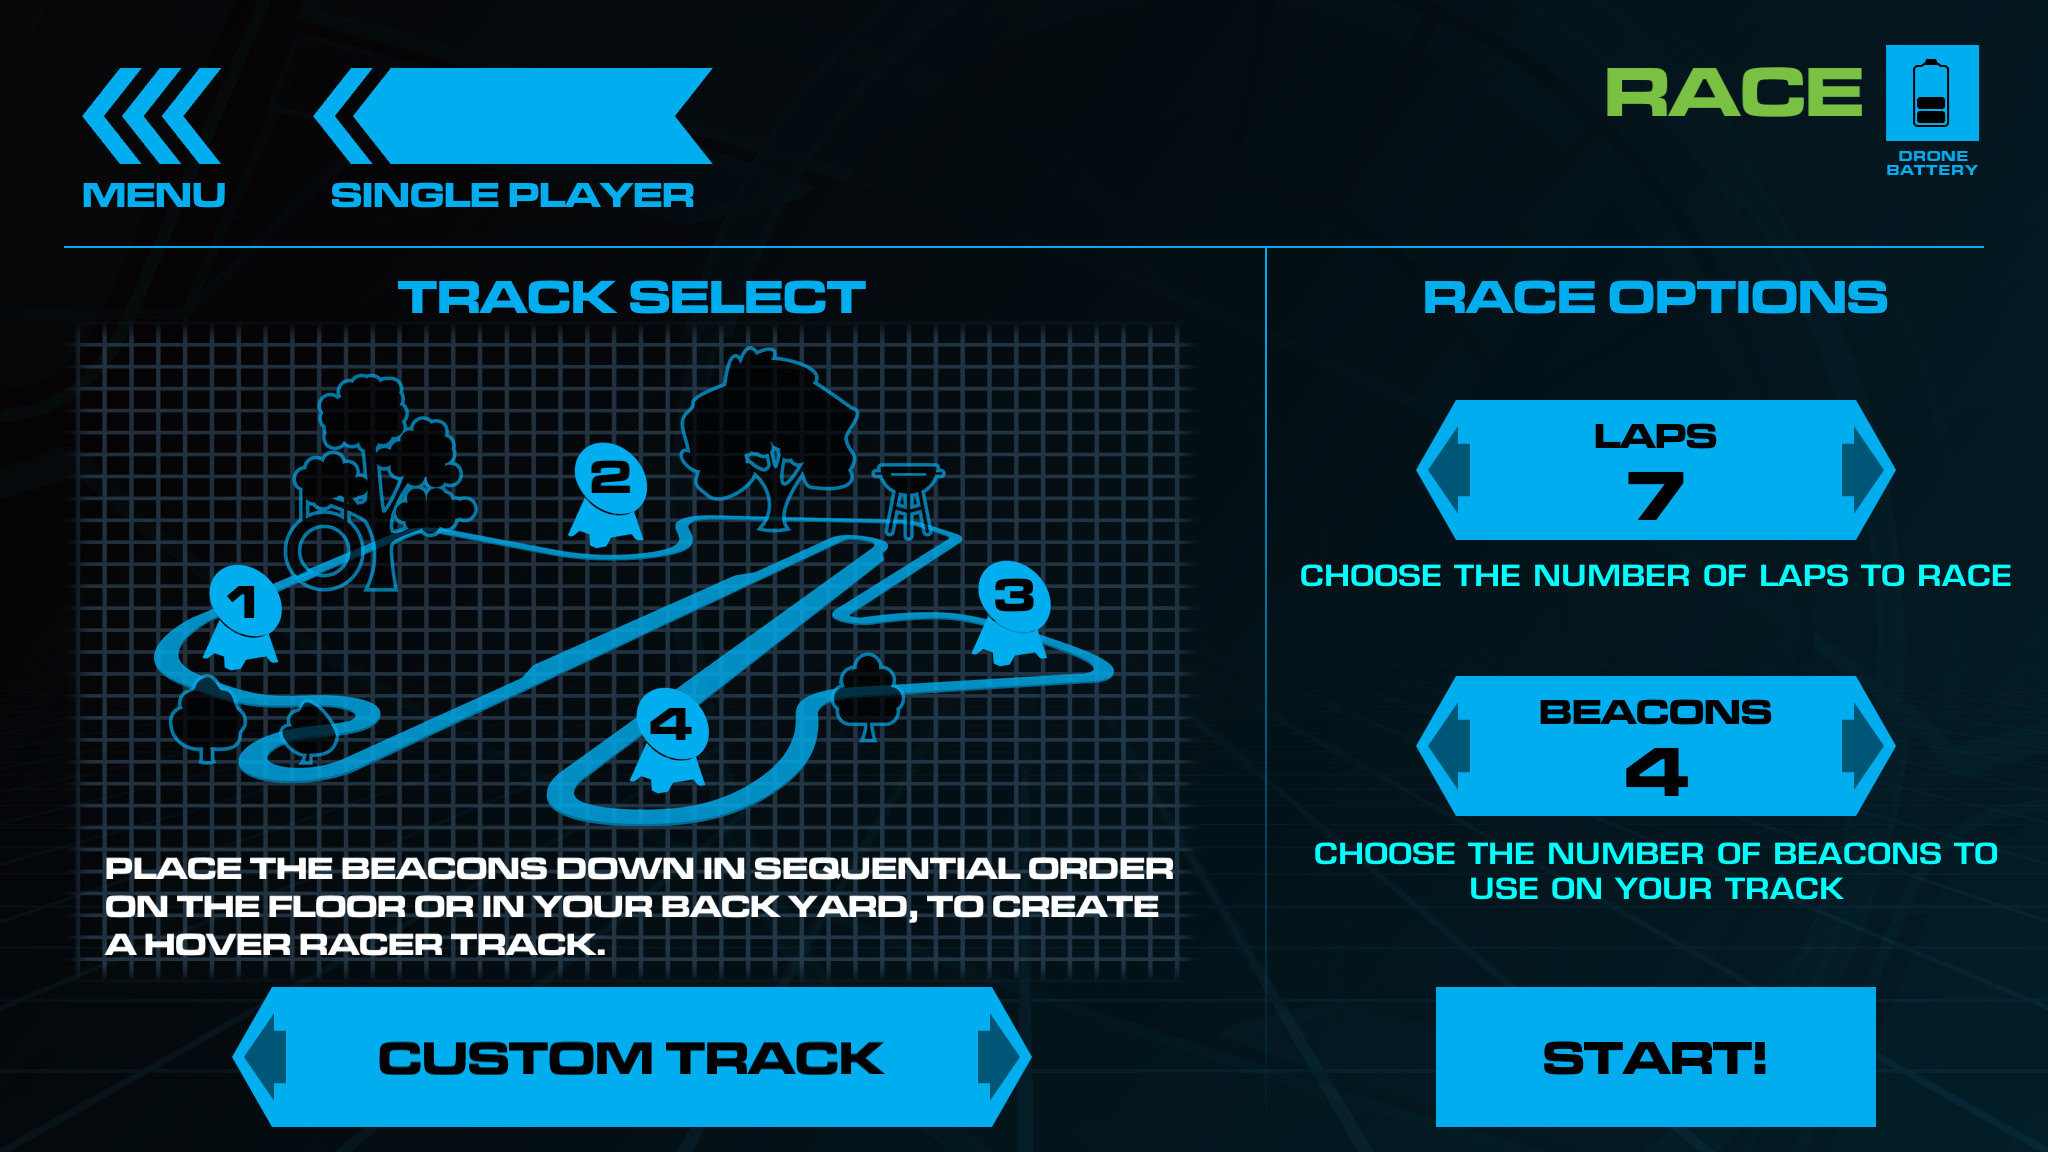 Track Select